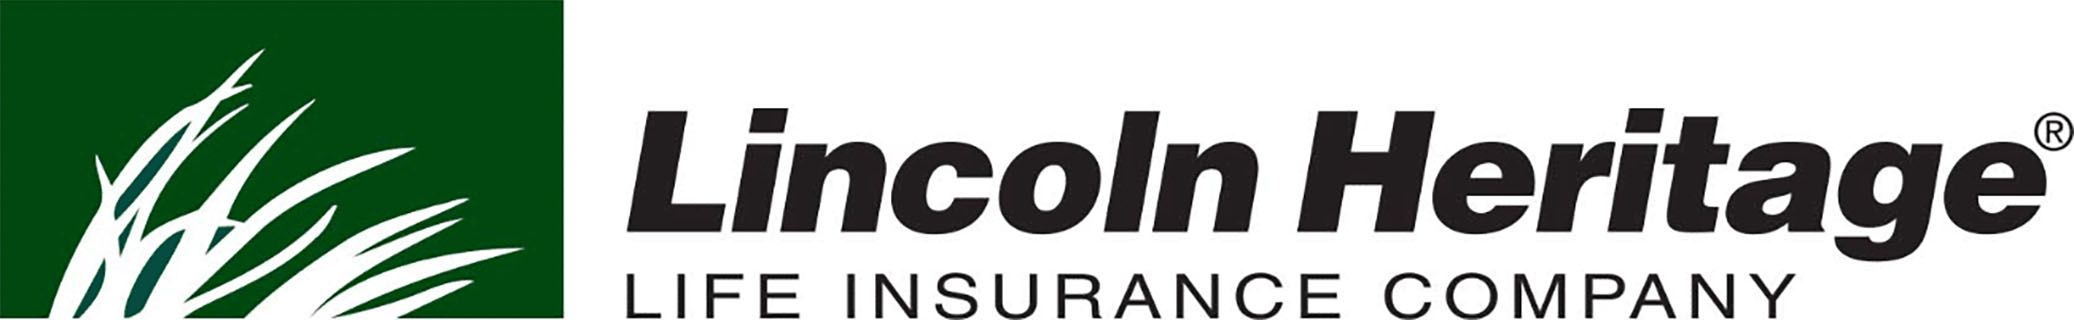 Lincoln Heritage Life Insurance